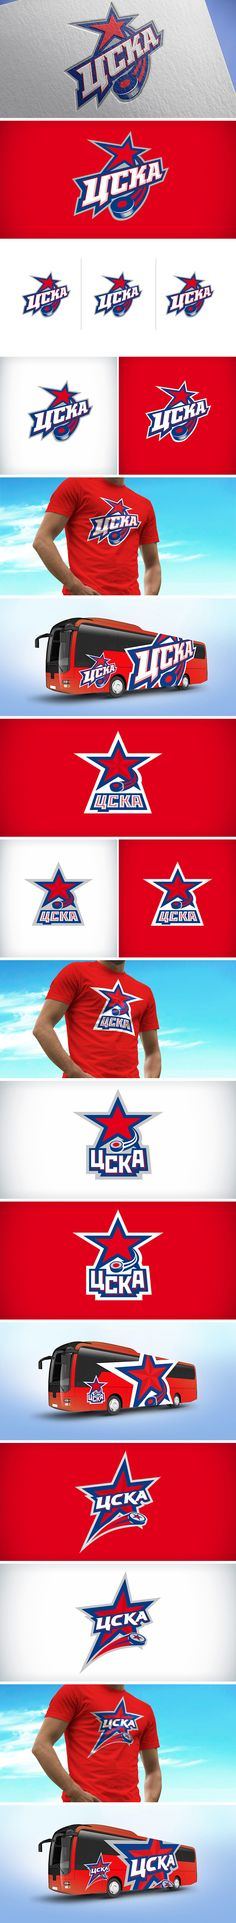 This is our entry for the logo design contest to create a logo of HC CSKA Moscow, the legendary Russian ice hockey club. Here I show several variants which made it to the final round. Наш конкурсный проект логотипа для легендарного российского хоккейного клуба - ЦСКА.